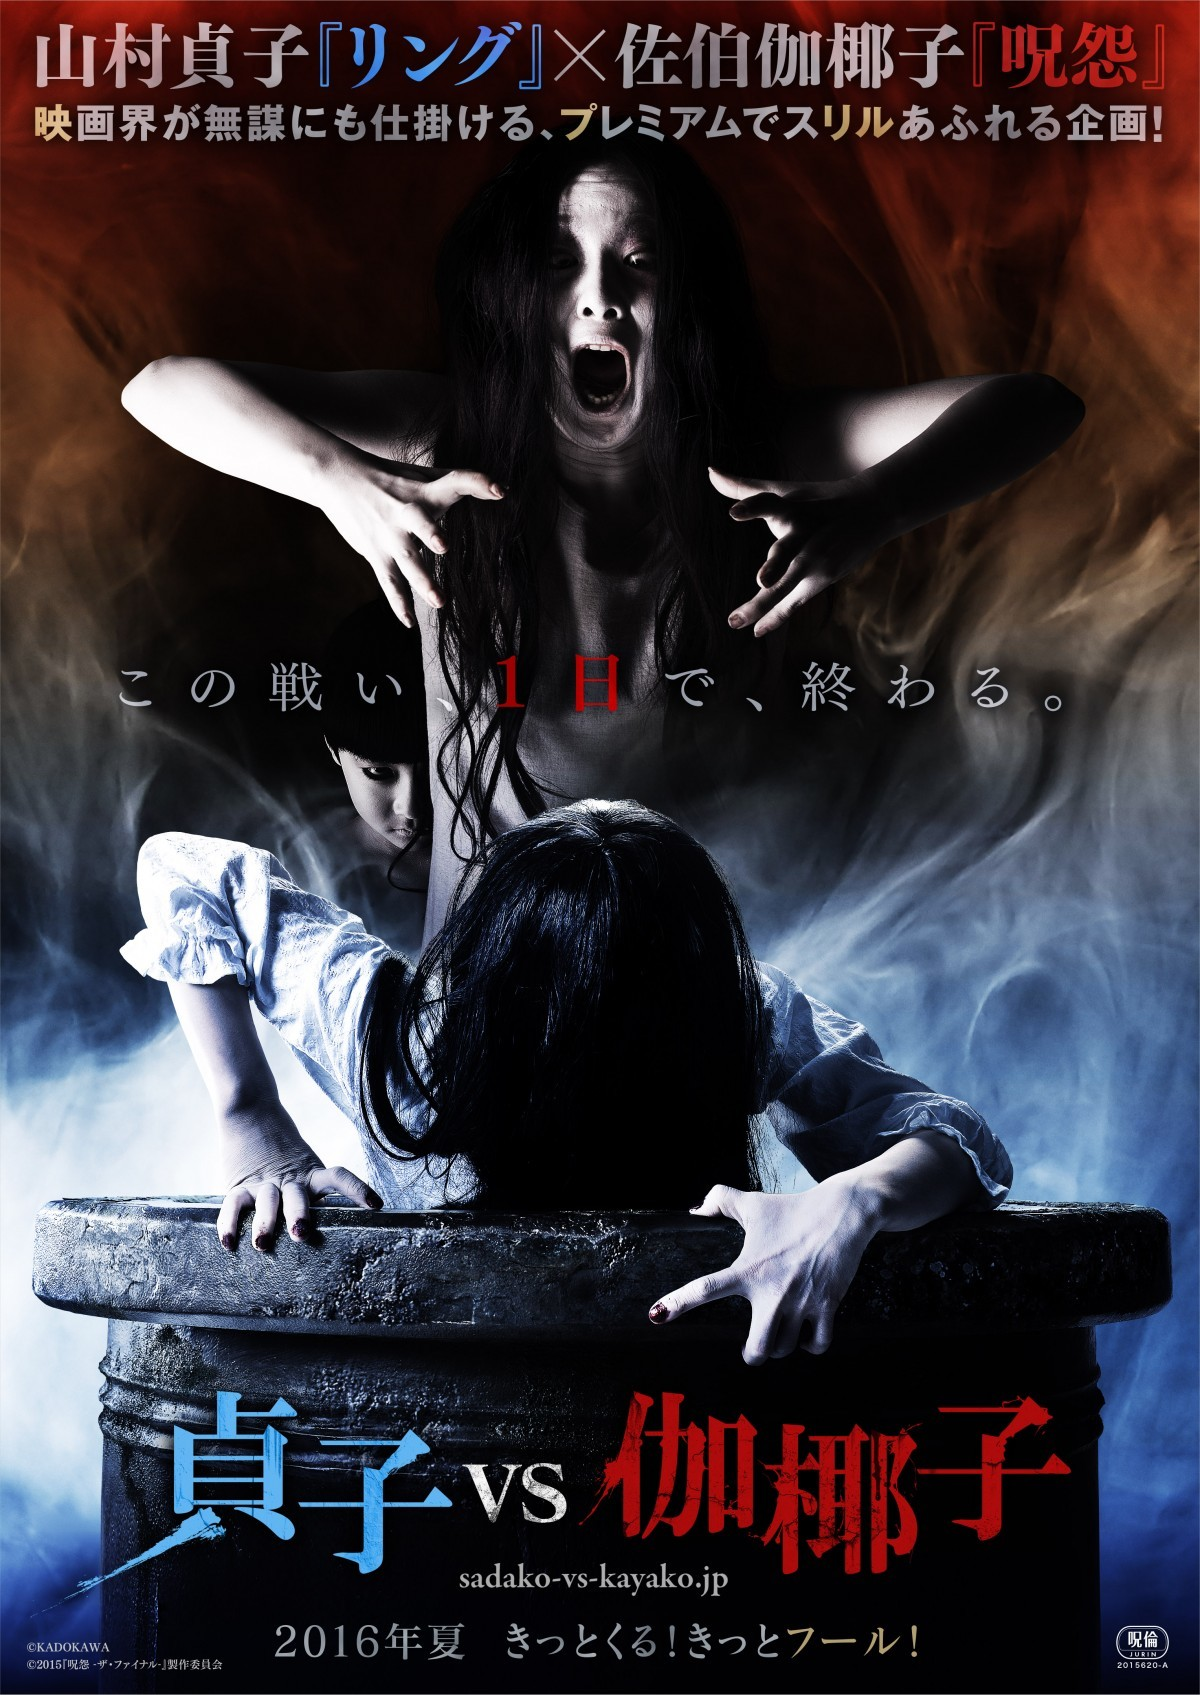 sadako_vs_kayako_cartel_0